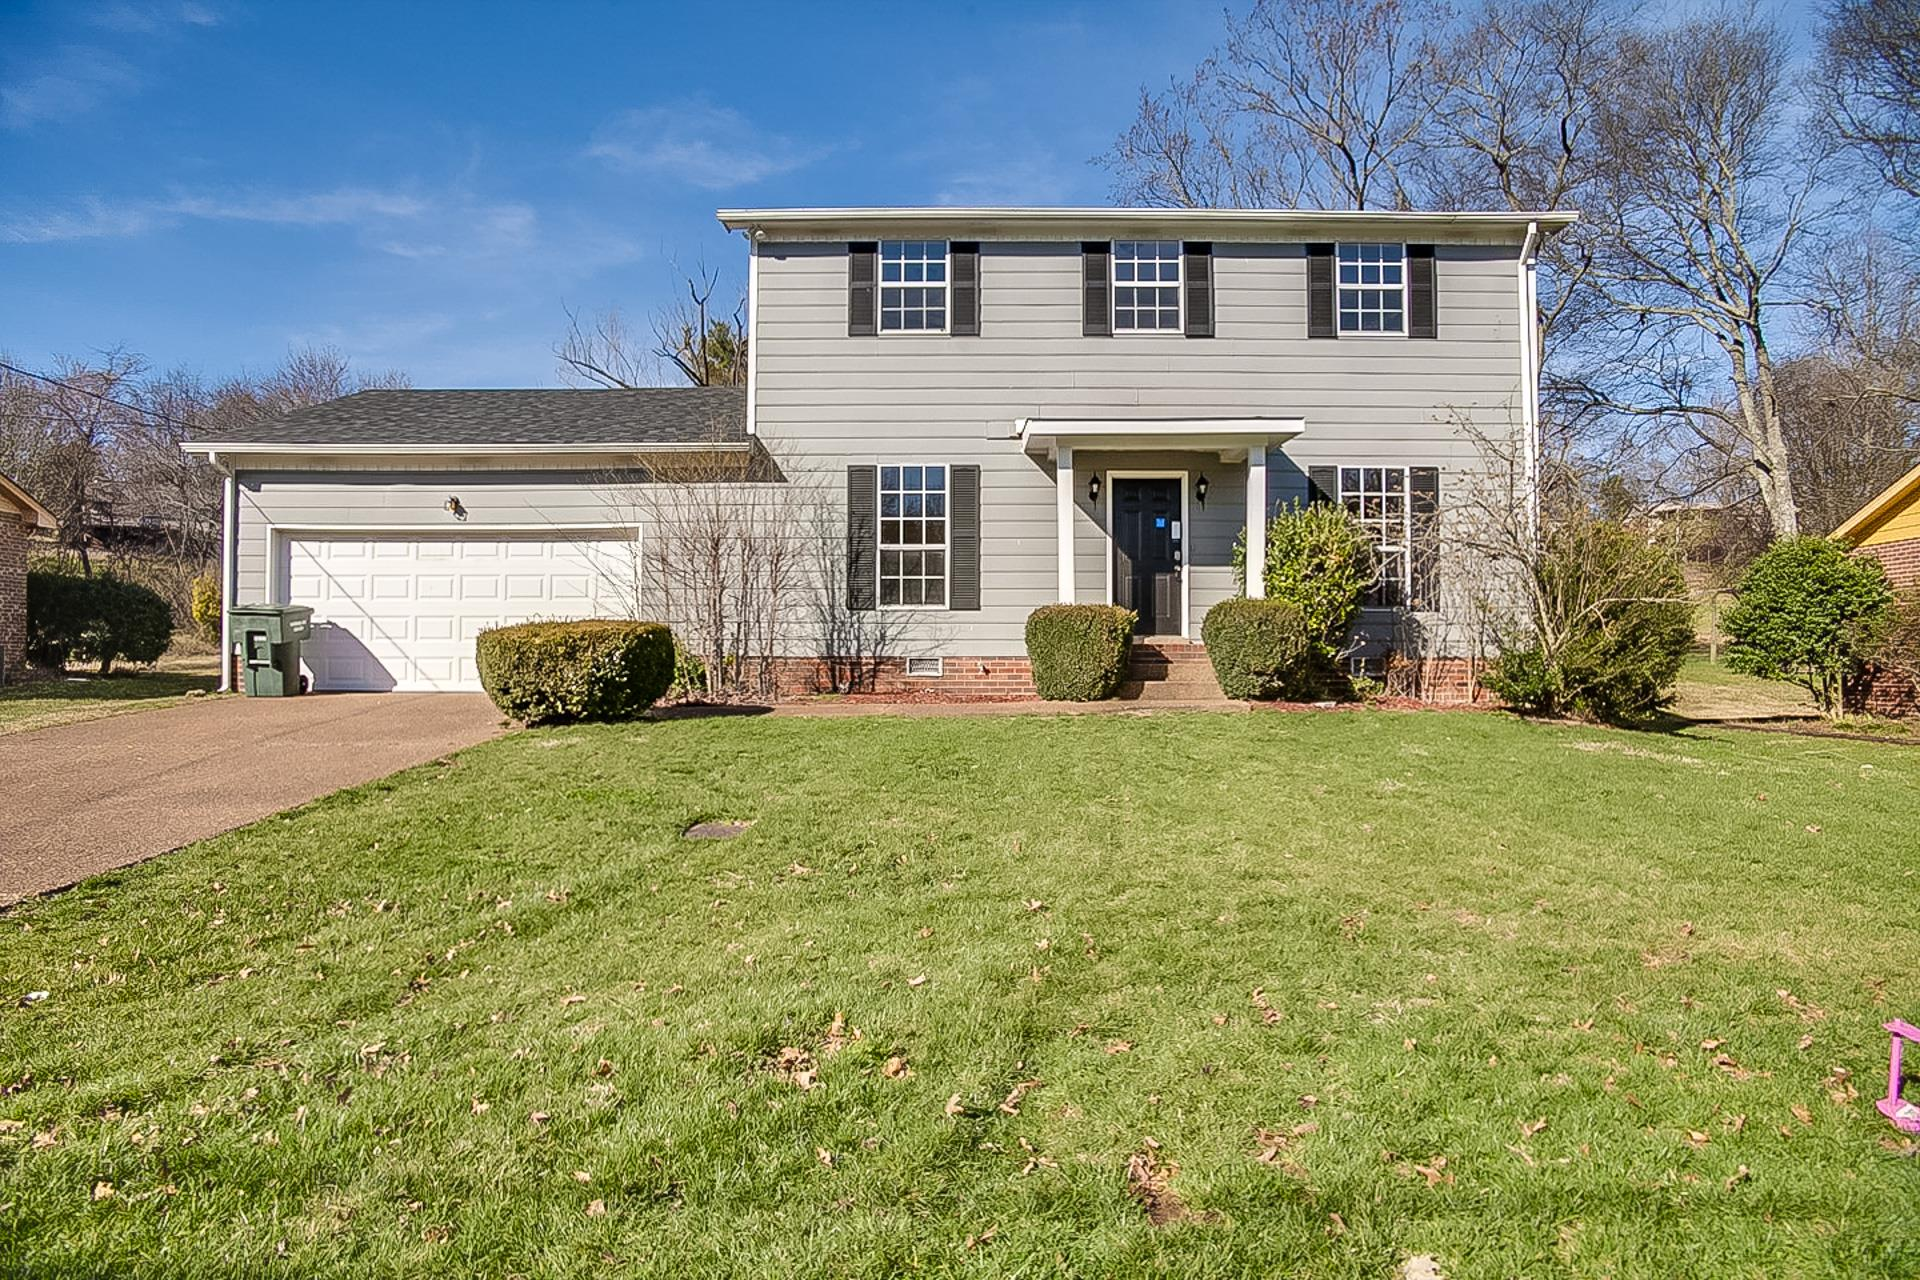 5116 Lana Renee Ct, Hermitage in Davidson County County, TN 37076 Home for Sale